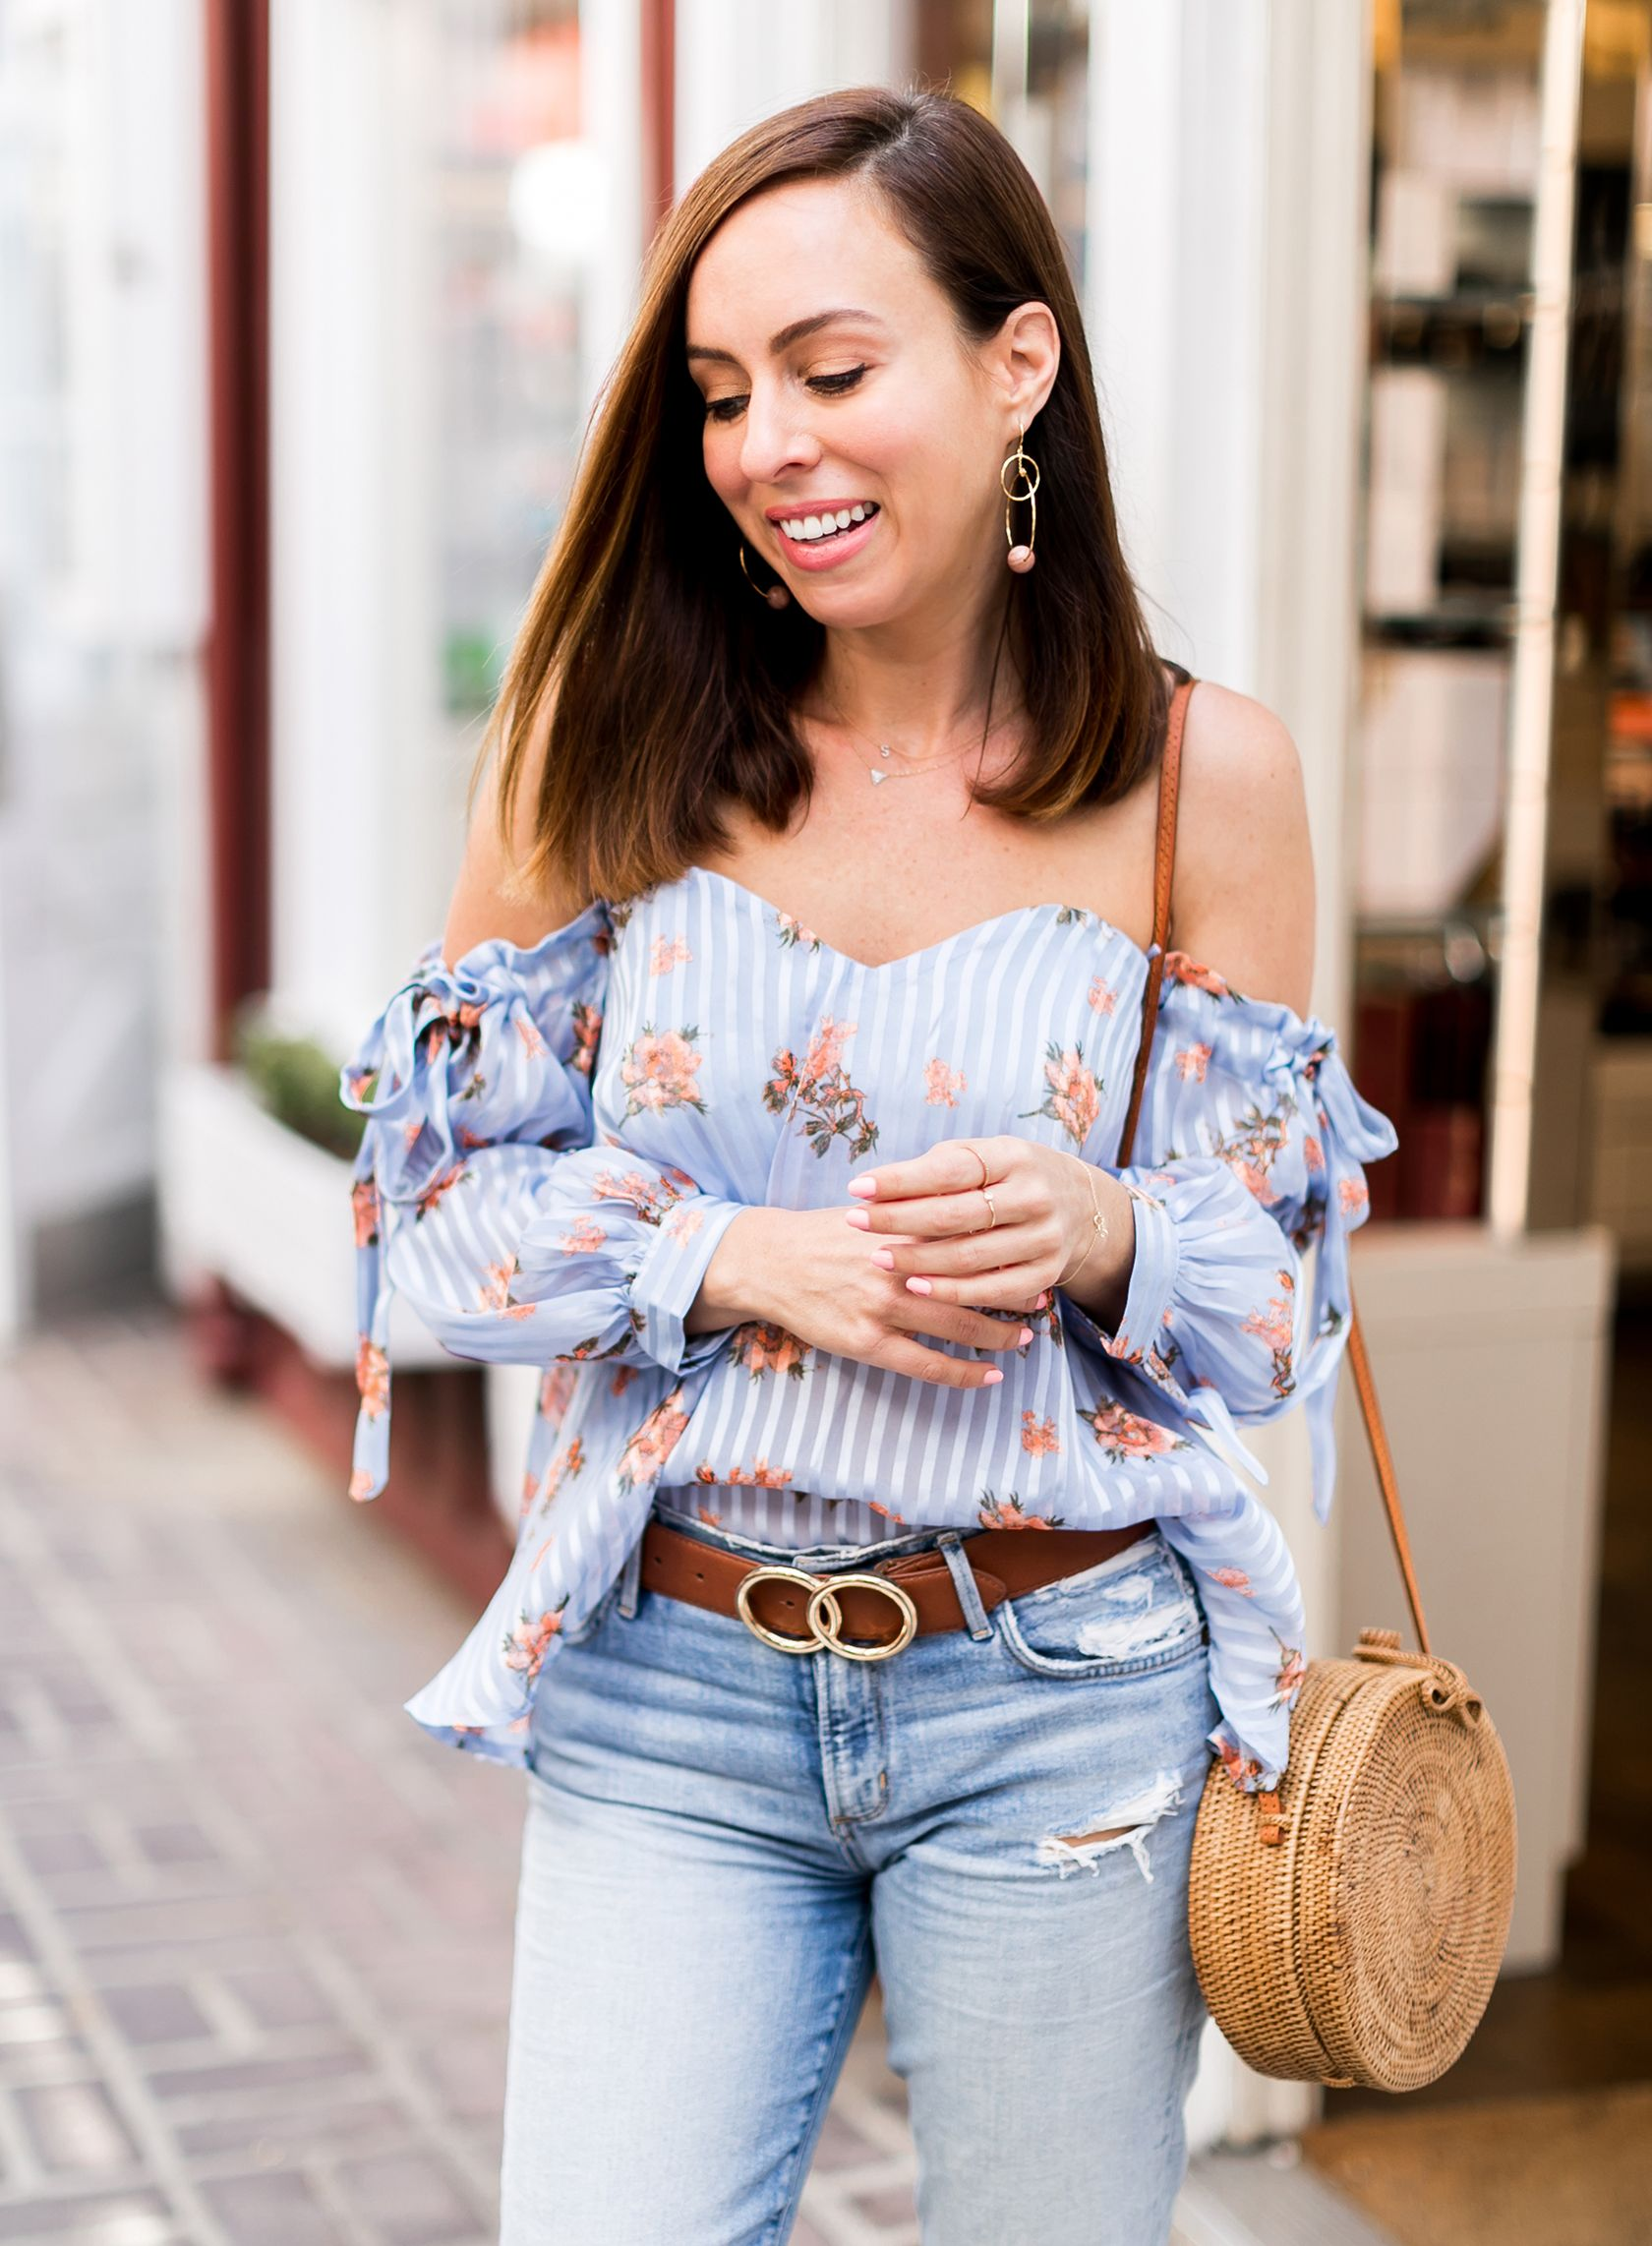 2af37416359 Sydne Style wears astr floral off the shoulder top for summer outfit ideas  #jeans #casualoutfits #florals #straw